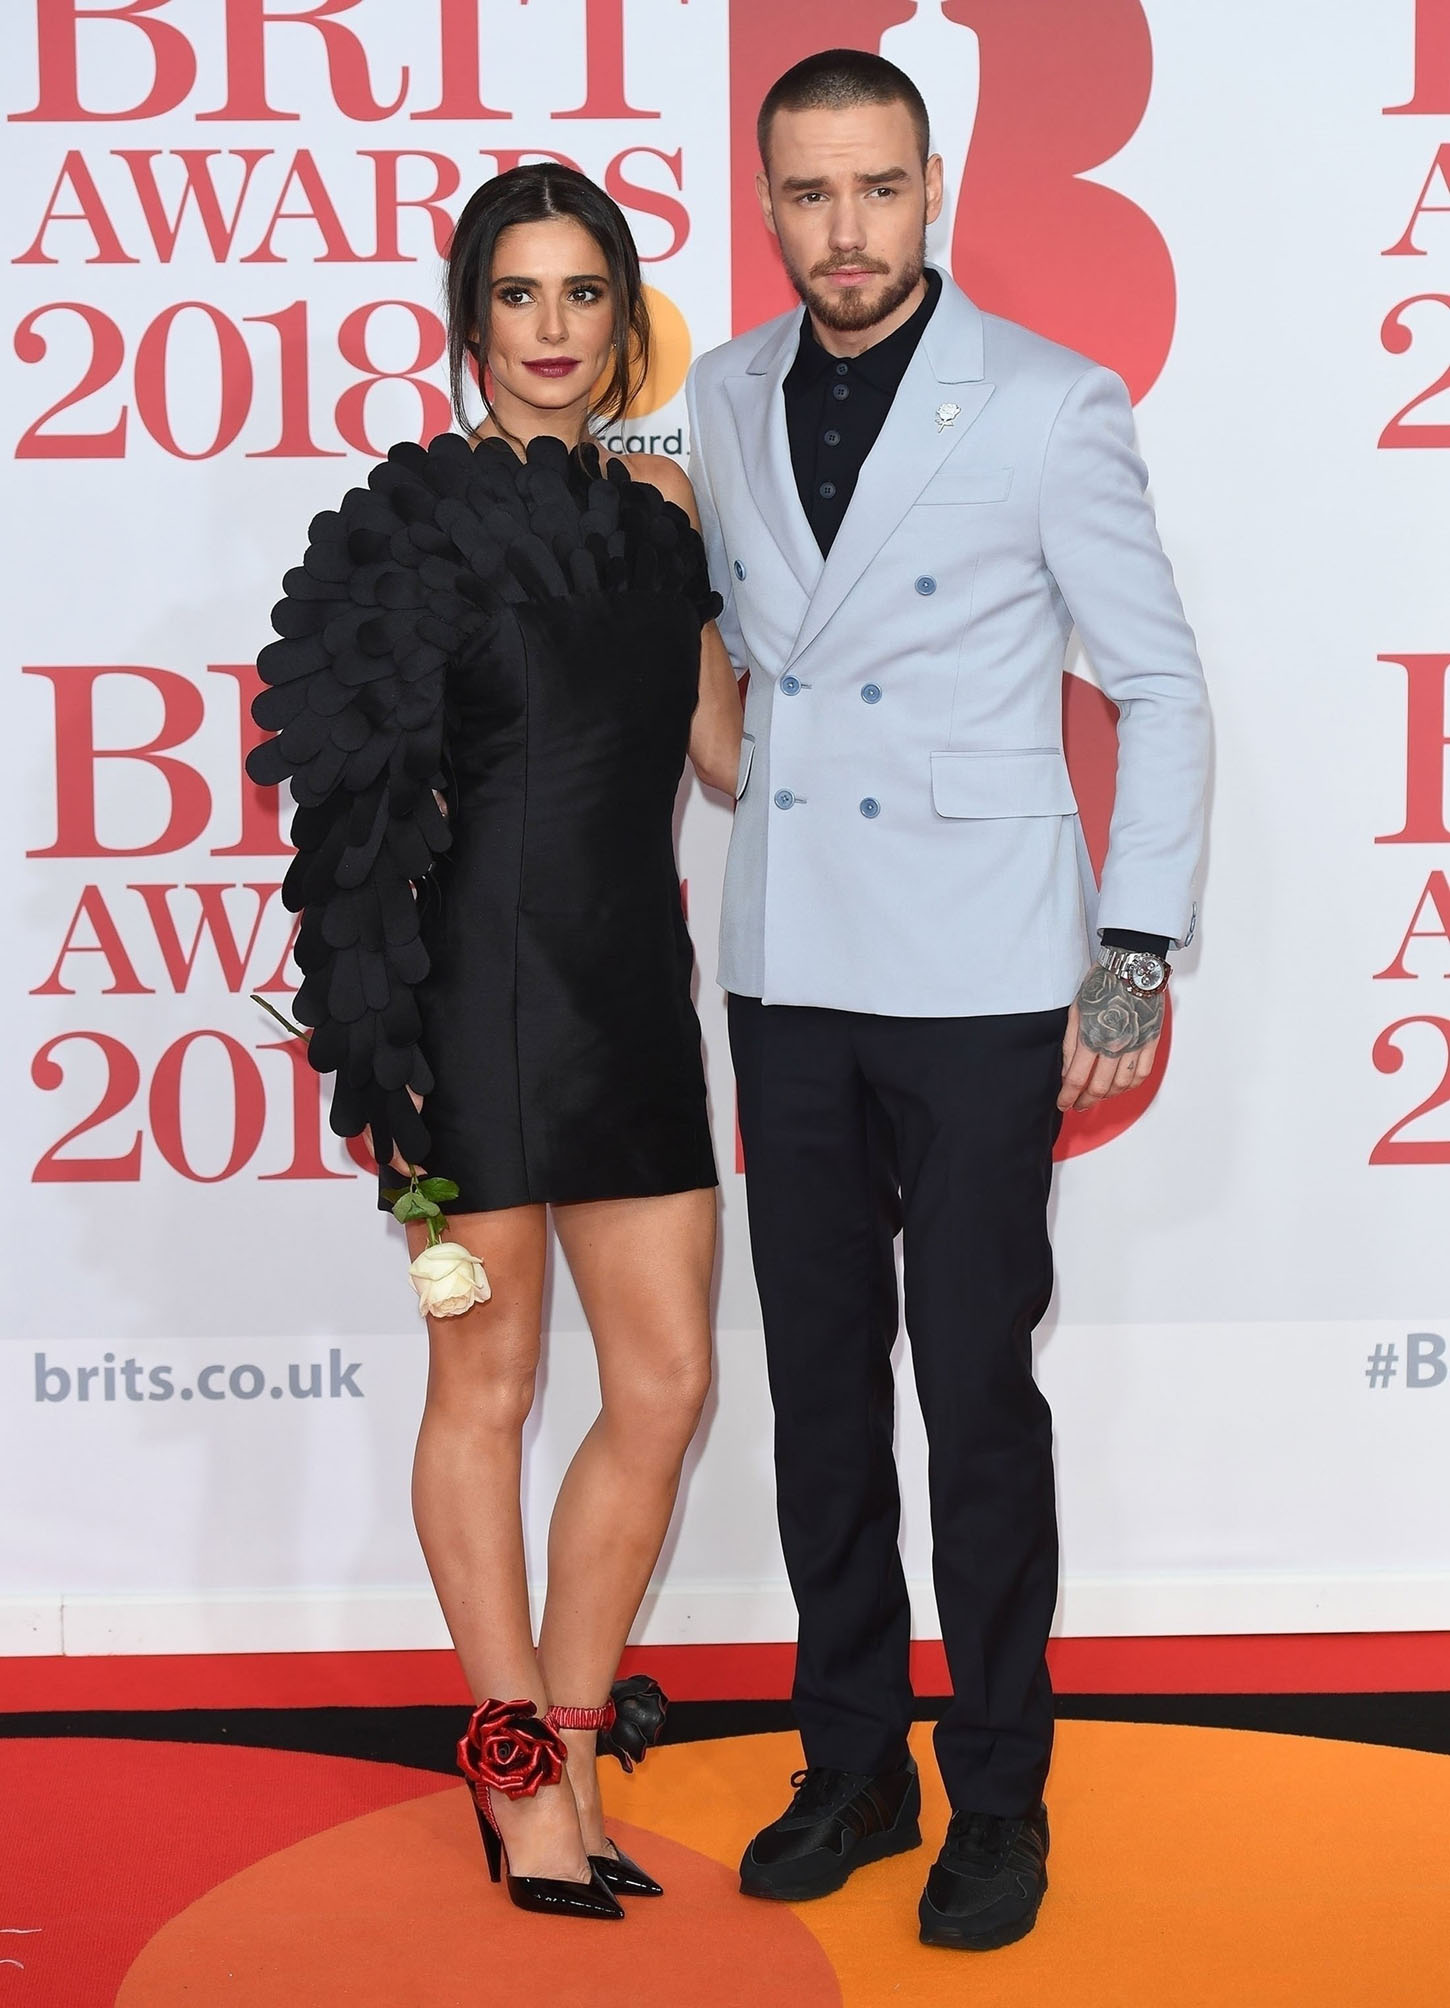 BGUK_1150824 - London, UNITED KINGDOM  - Cheryl and Liam Payne attend the 2018 Brit Awards. Cheryl held a single white rose as a sign of affection from Liam despite reports of the couple's relationship on the rocks.  Pictured: Cheryl and Liam Payne  BACKGRID UK 22 FEBRUARY 2018, Image: 364011226, License: Rights-managed, Restrictions: , Model Release: no, Credit line: Profimedia, Xposurephotos